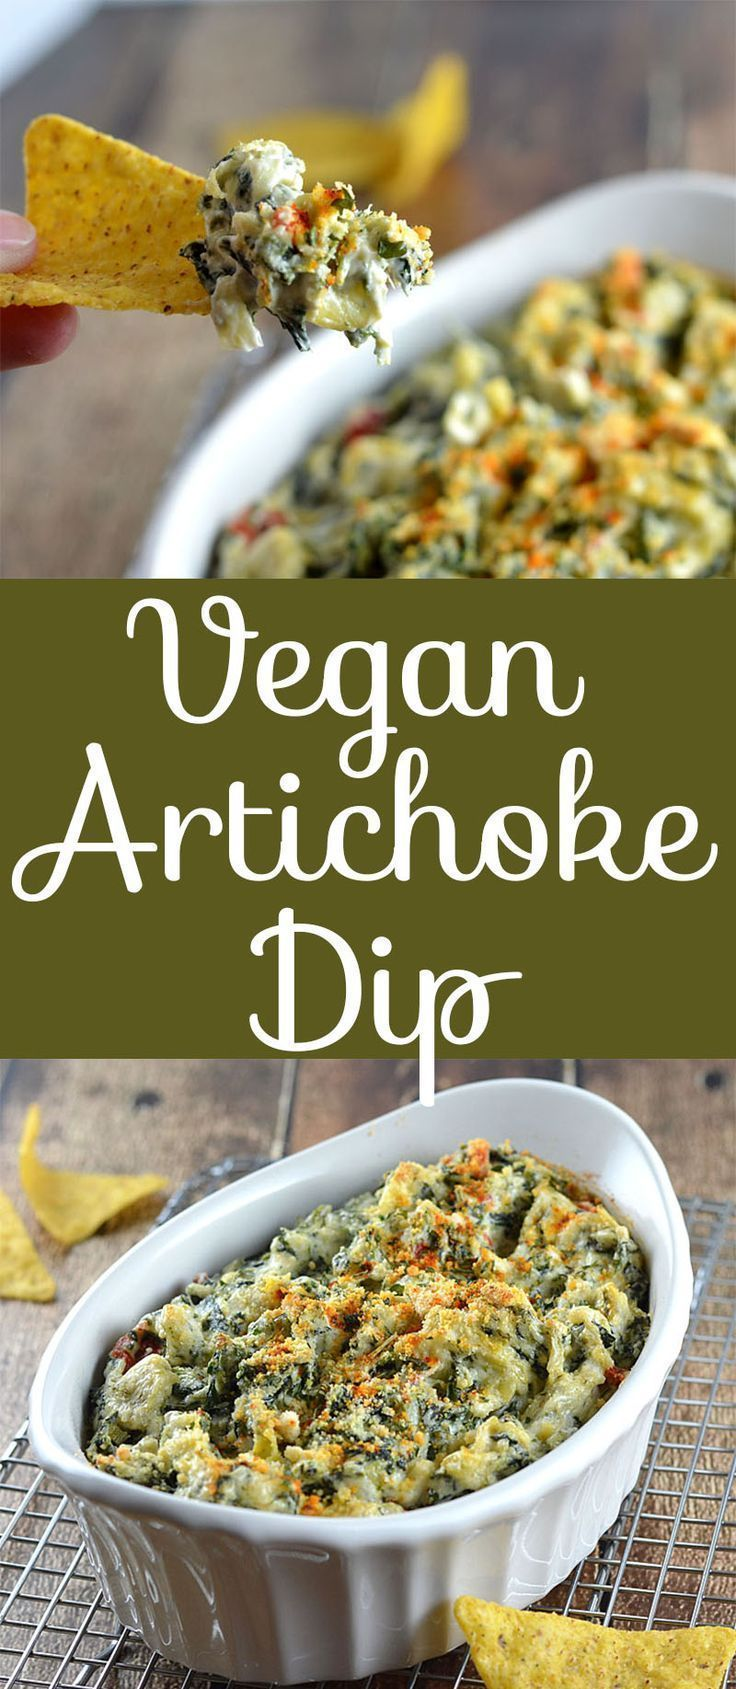 Vegan Baked Spinach and Artichoke Dip